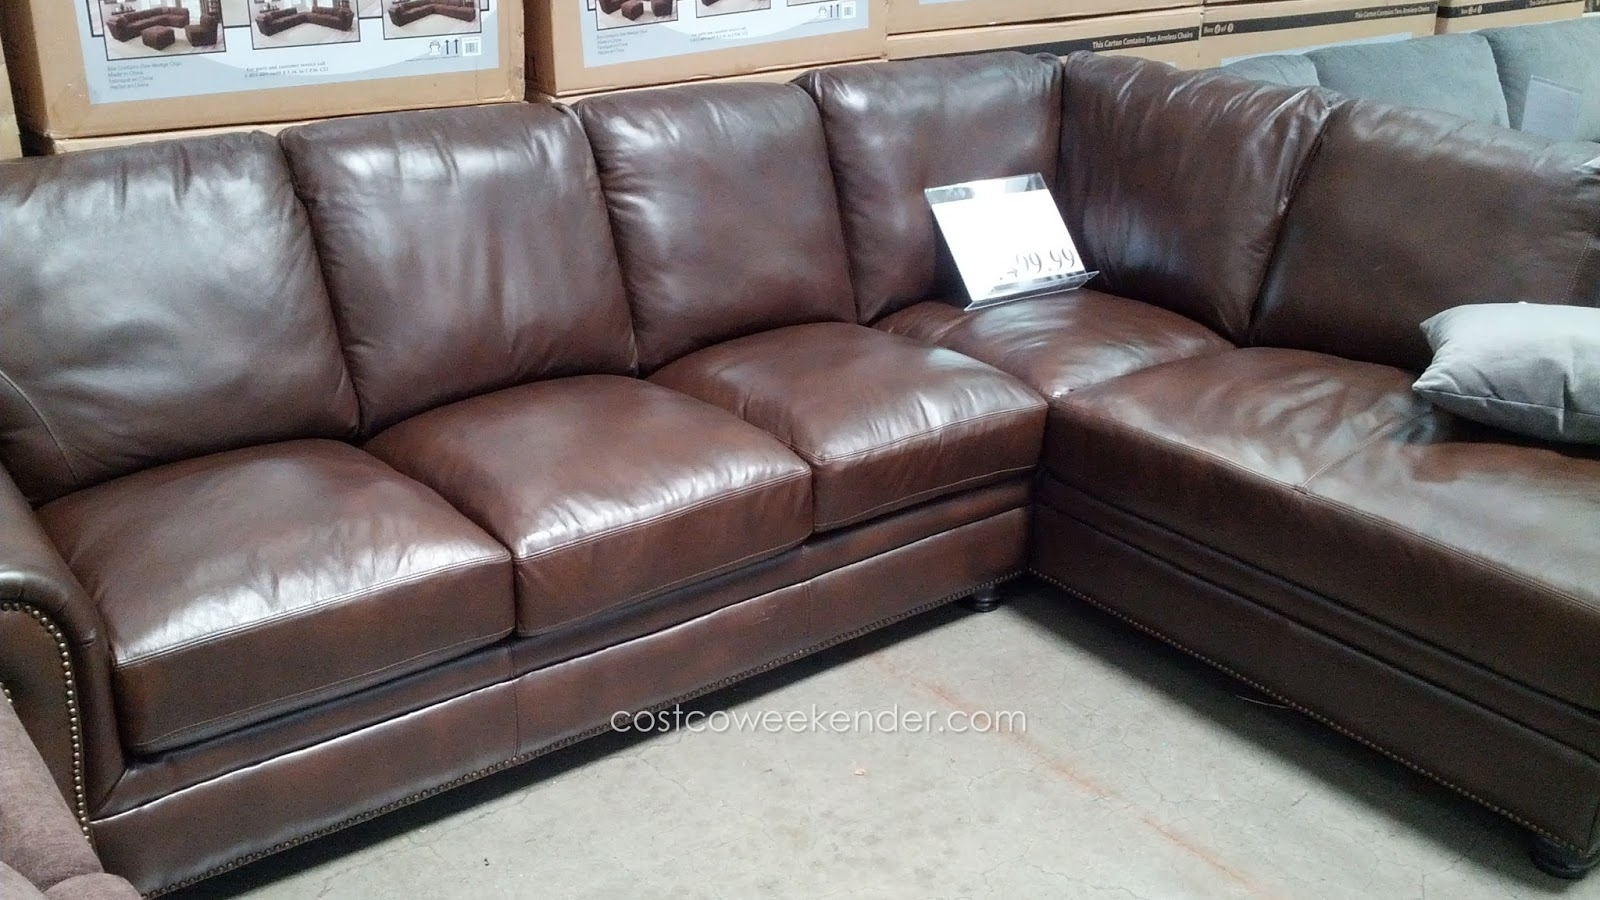 Marks & Cohen Savoy 2 Piece Leather Sectional Couch | Costco Weekender inside Cohen Down 2 Piece Sectionals (Image 20 of 30)